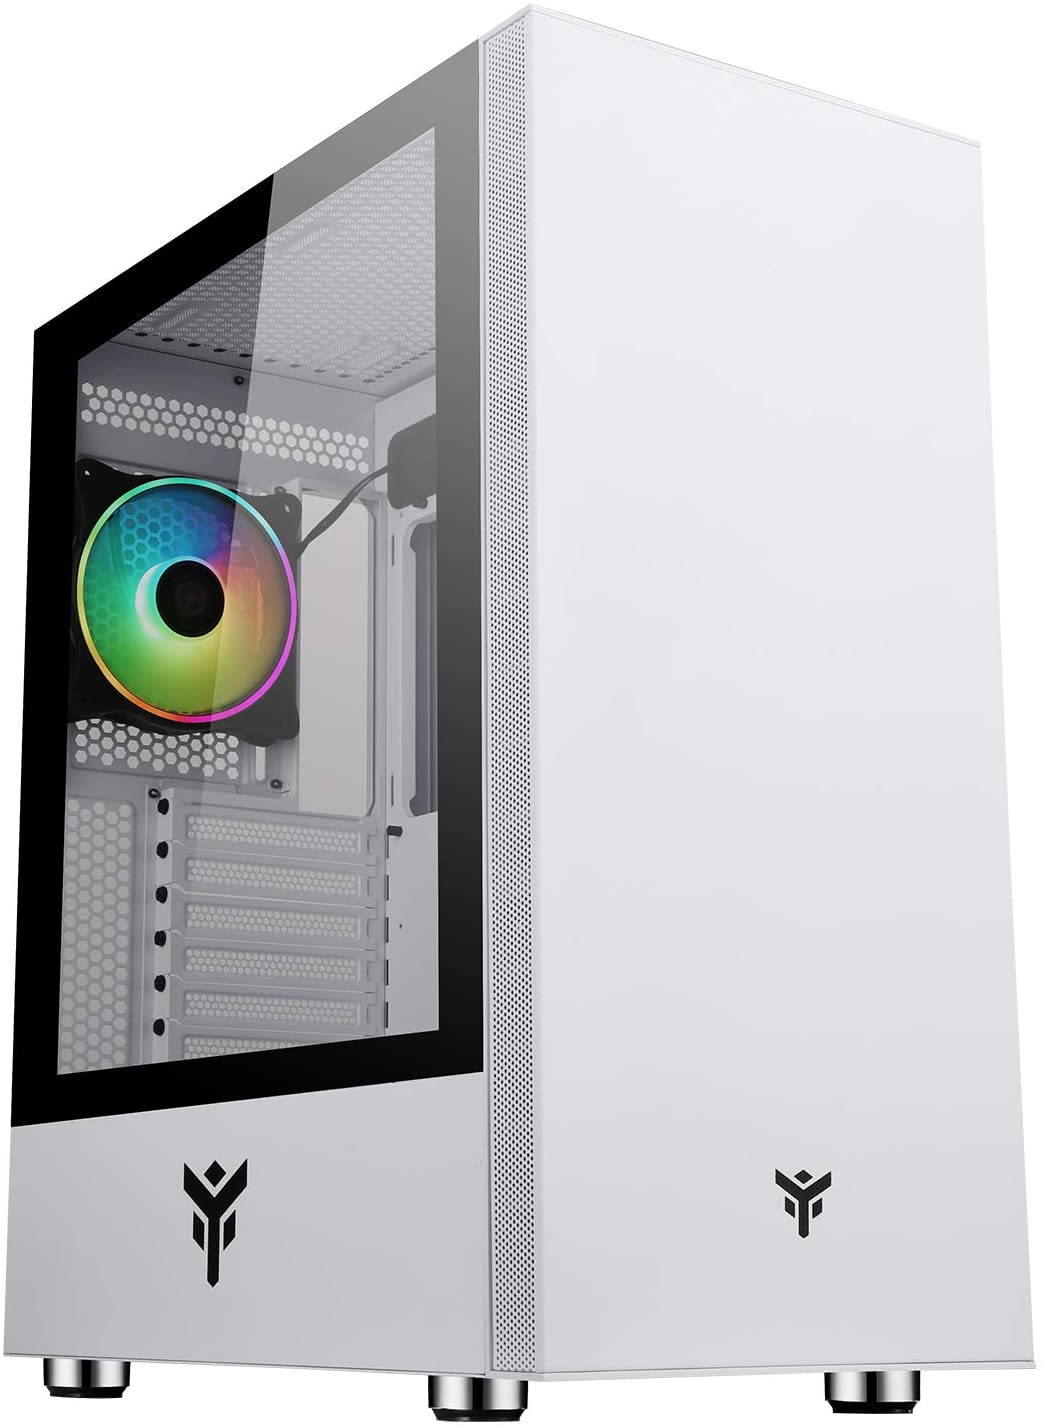 CASE VERTIBRA S210 GAMING ATX WHITE